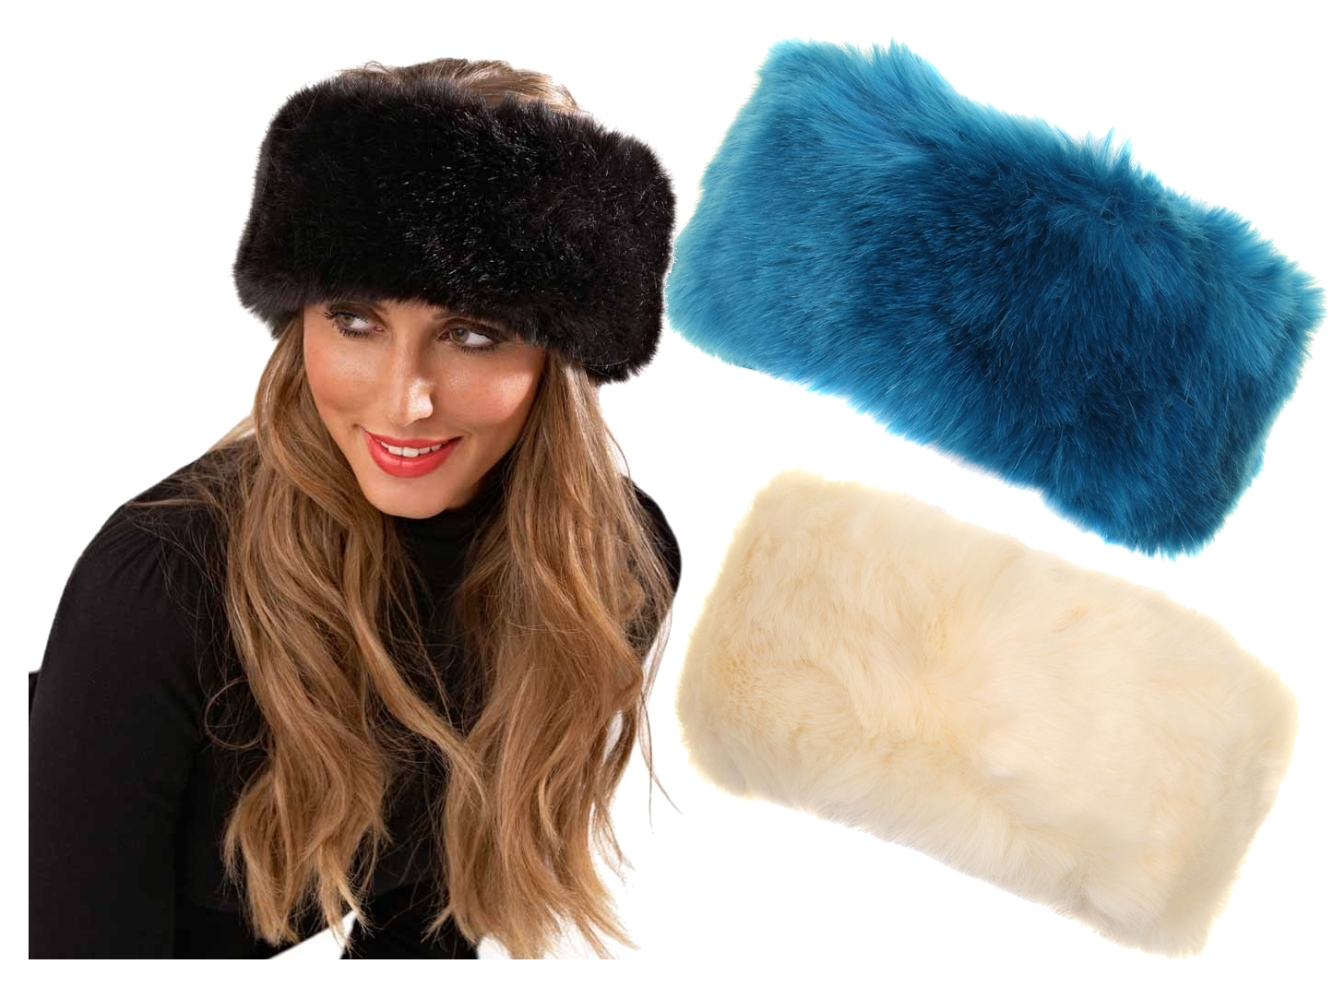 Women   Faux Fur Headbands   Faux Fur Headband - Faux Fur Throws ... 85a5d19b94b